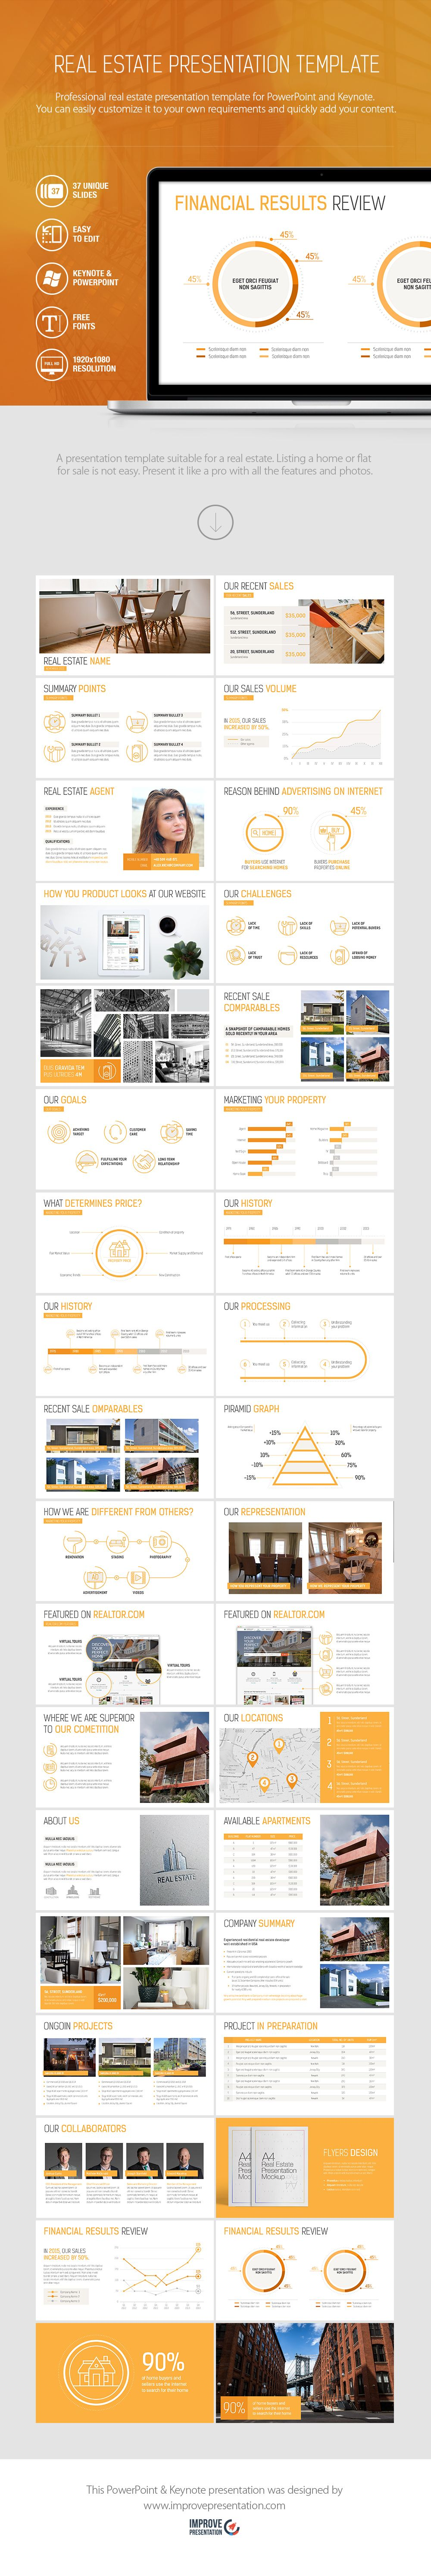 Real Estate Presentation Template Presentation Templates Real - Listing presentation template